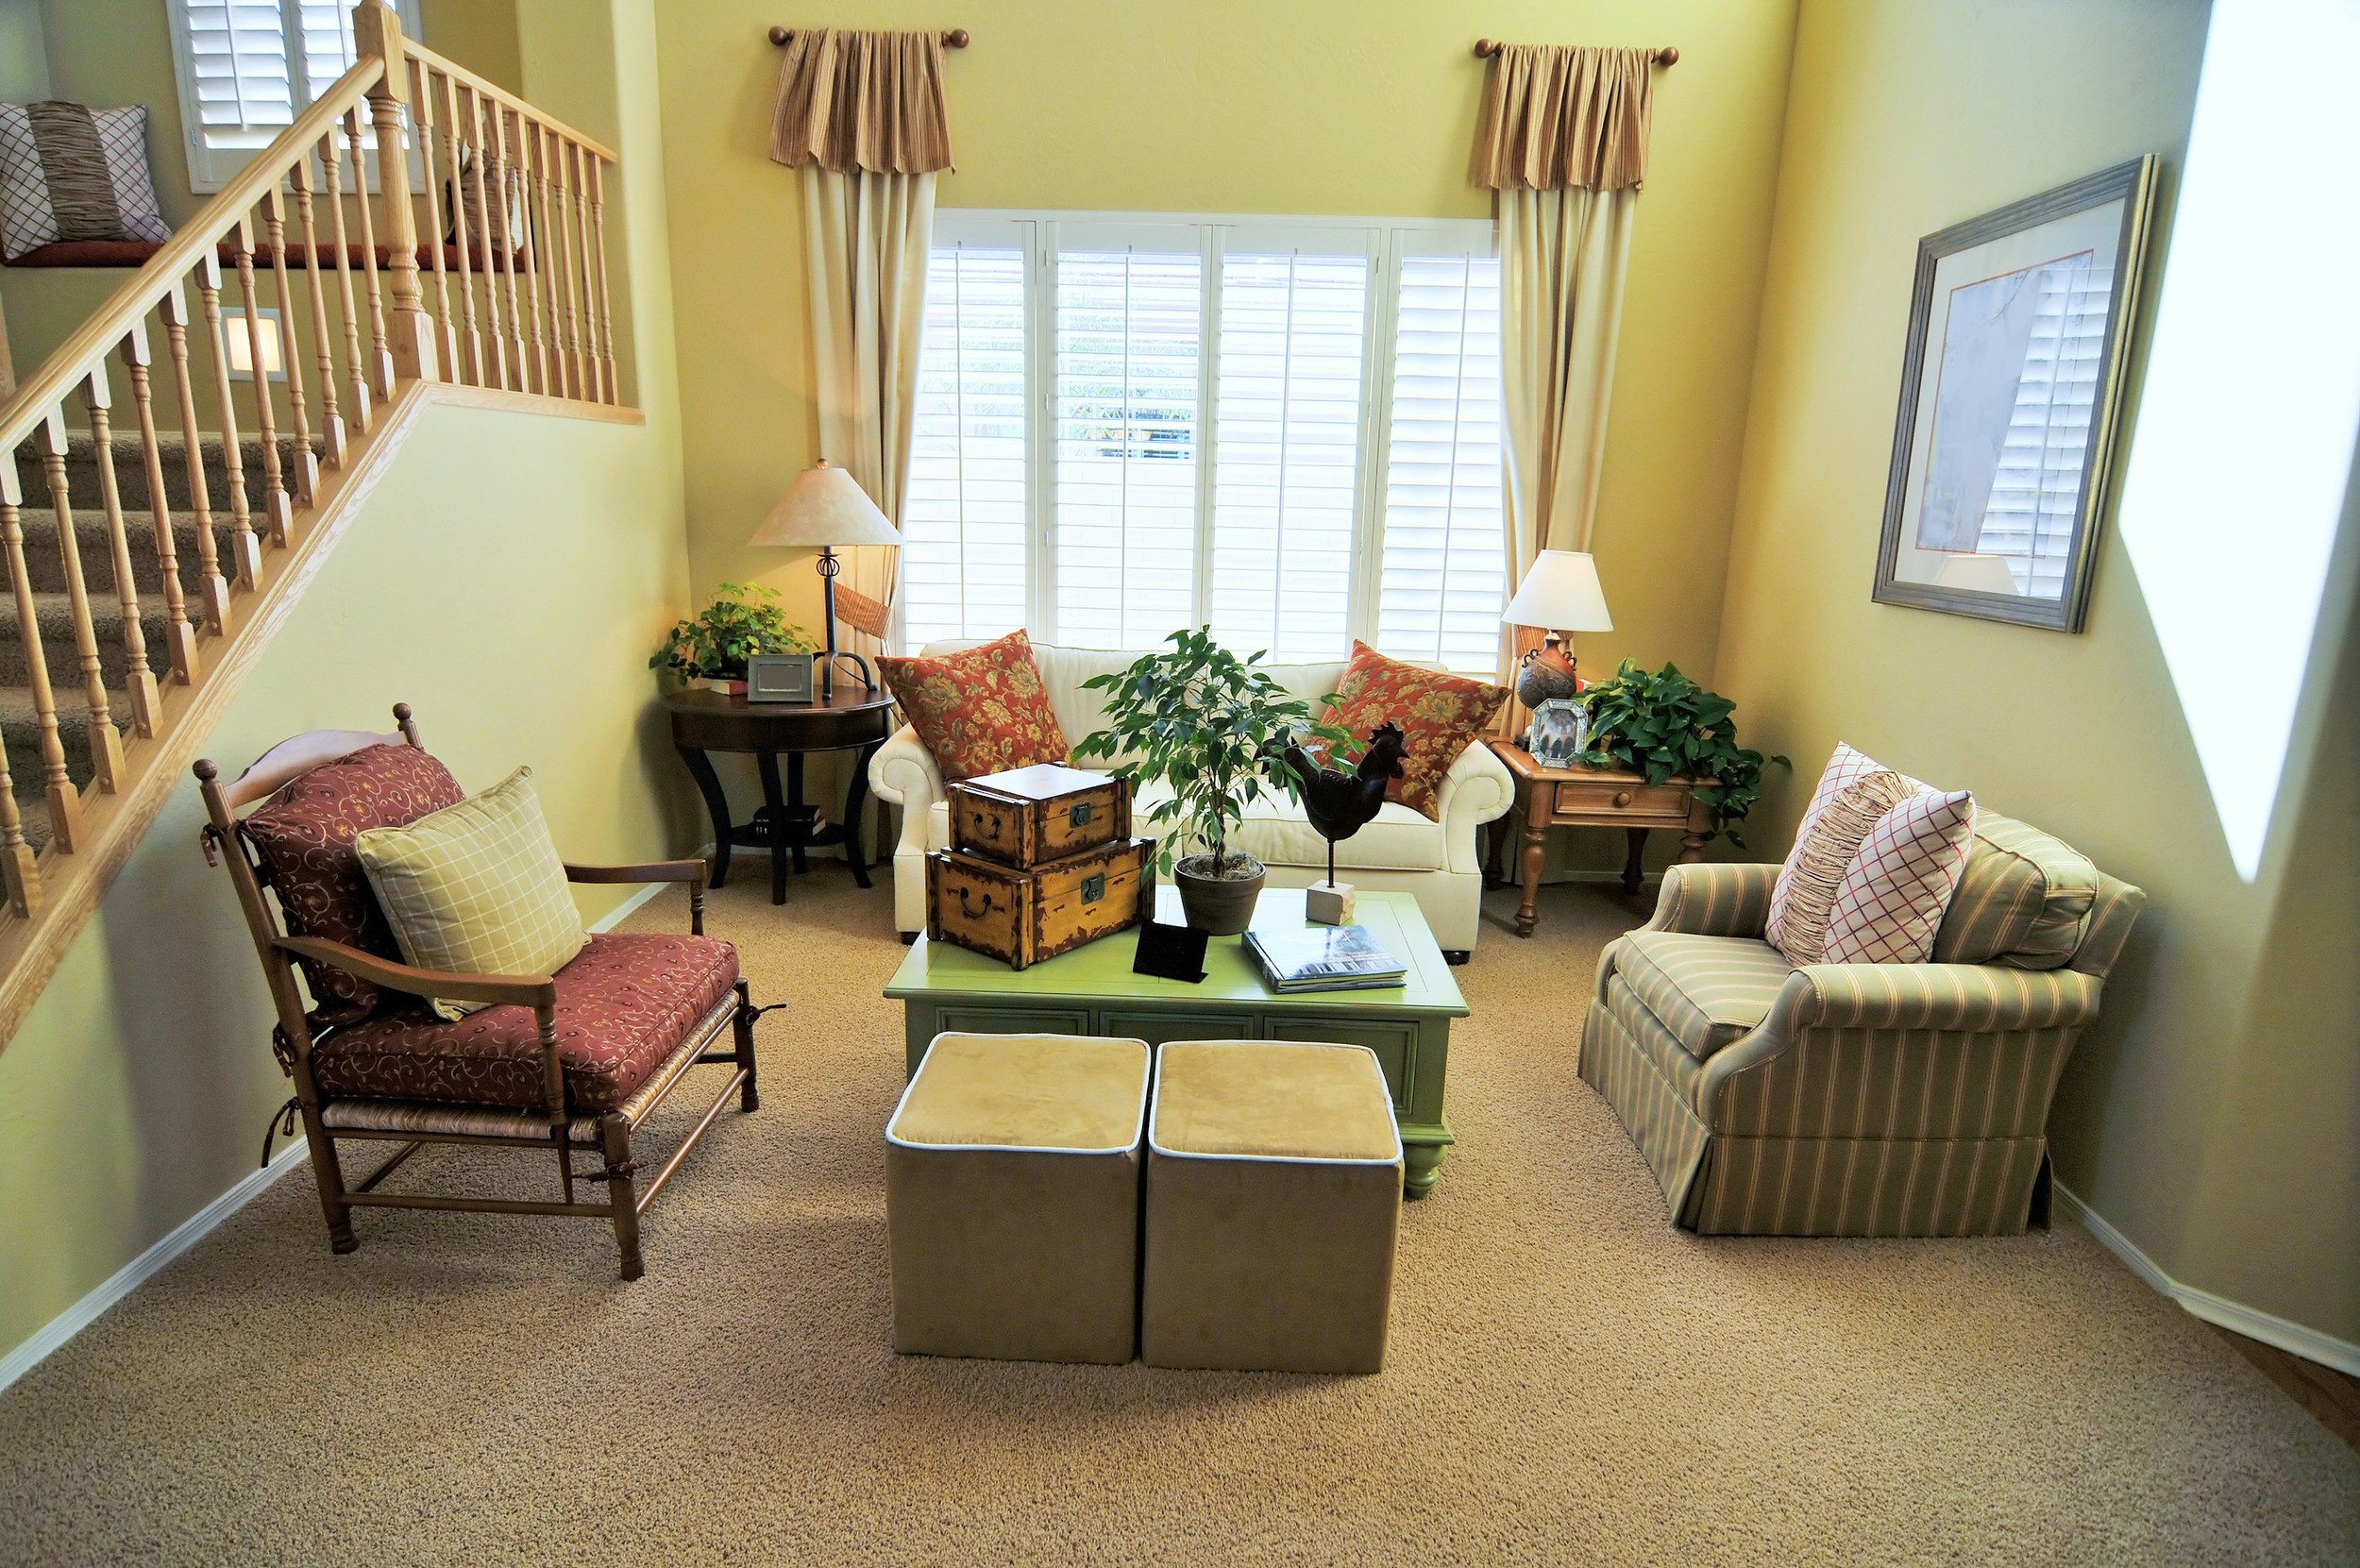 Living room with large window shutters